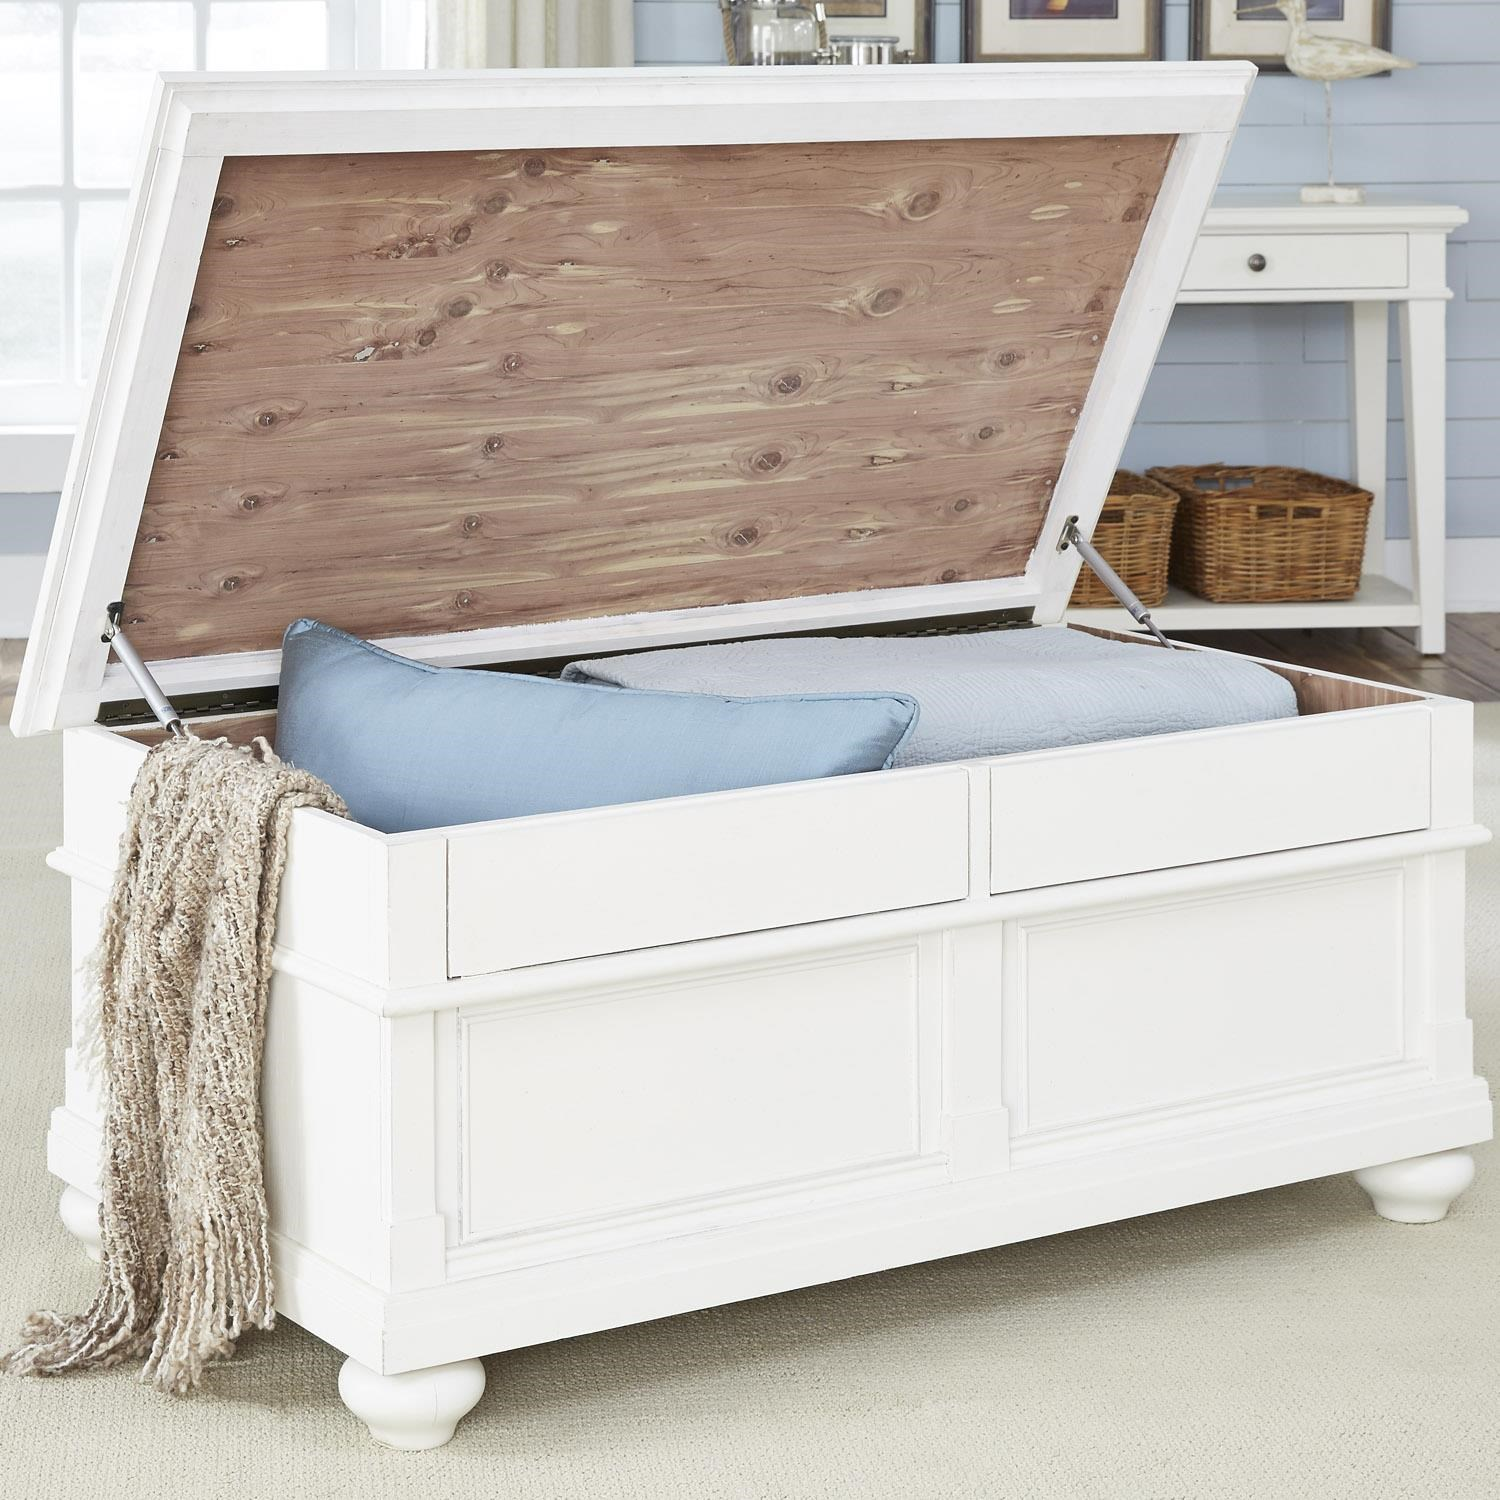 Genial Liberty Furniture Harbor View Cedar Lined Storage Trunk